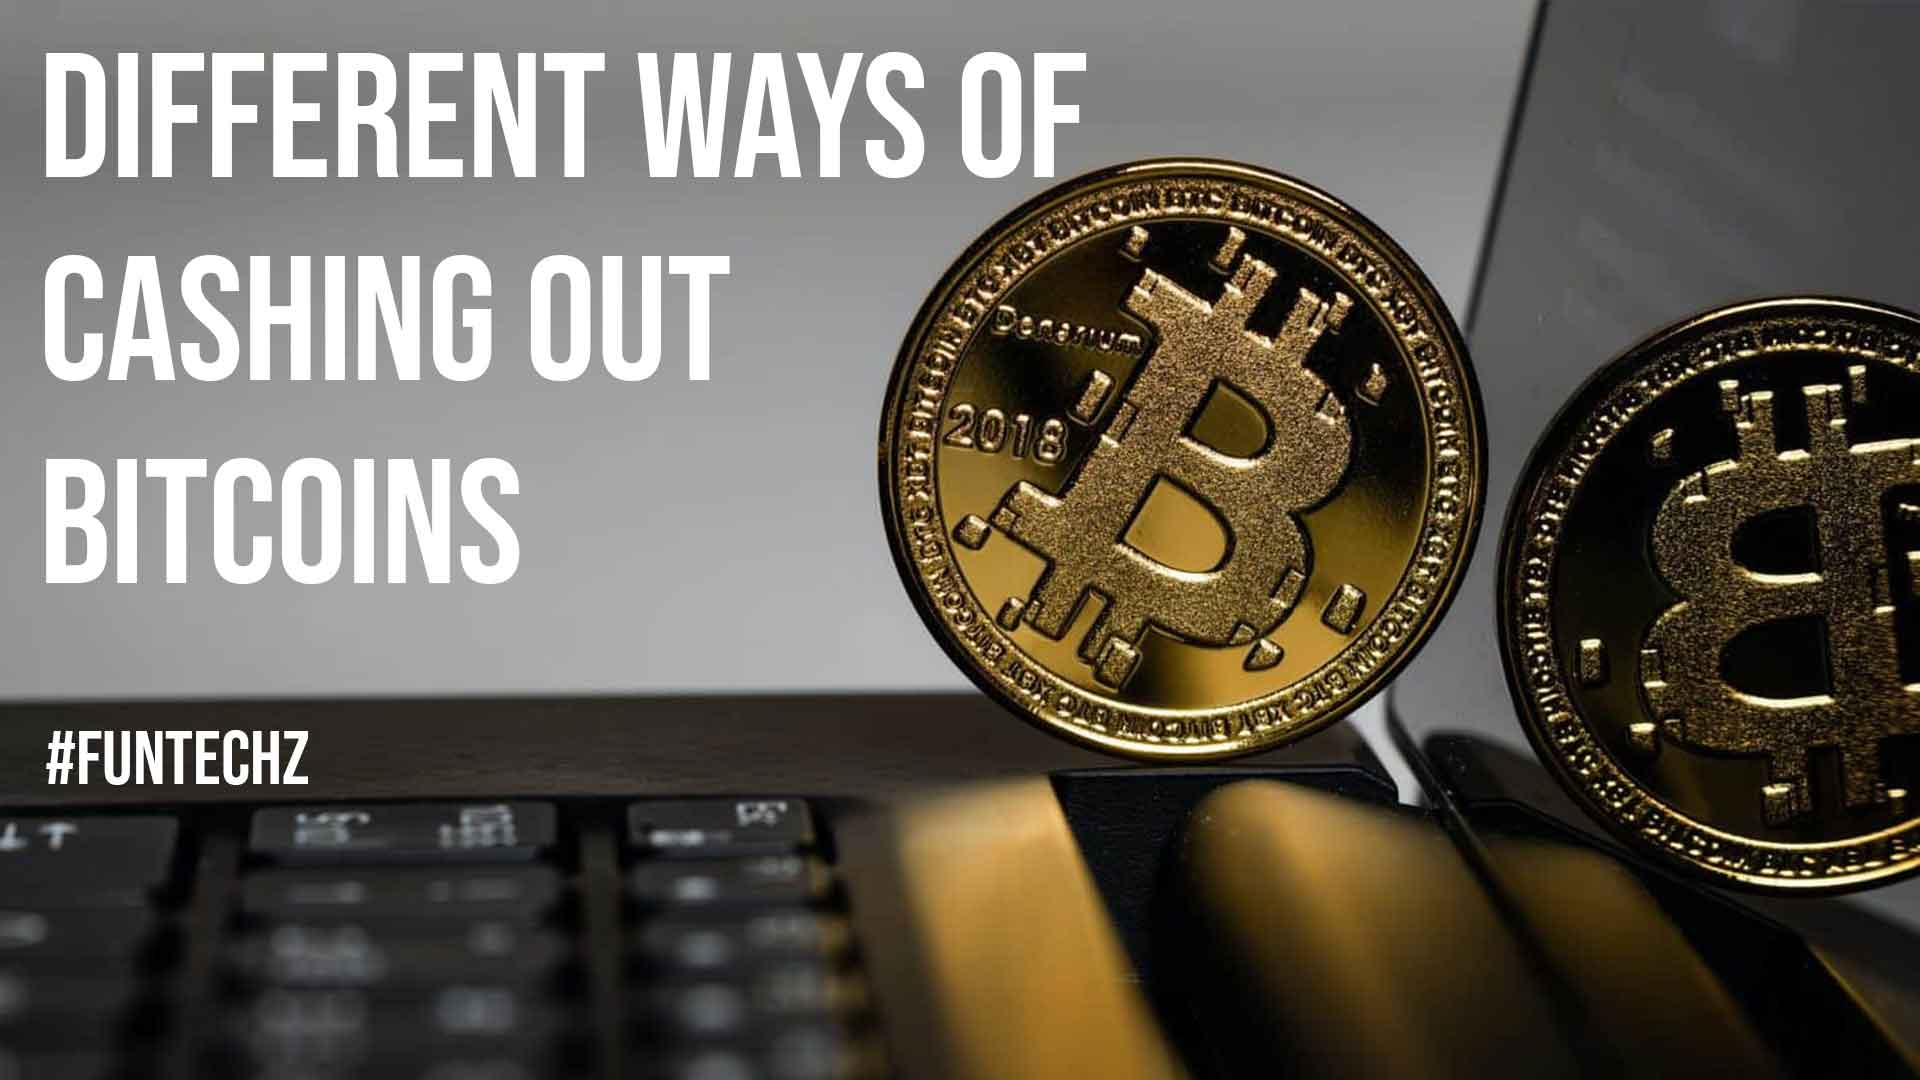 Different Ways of Cashing out Bitcoins